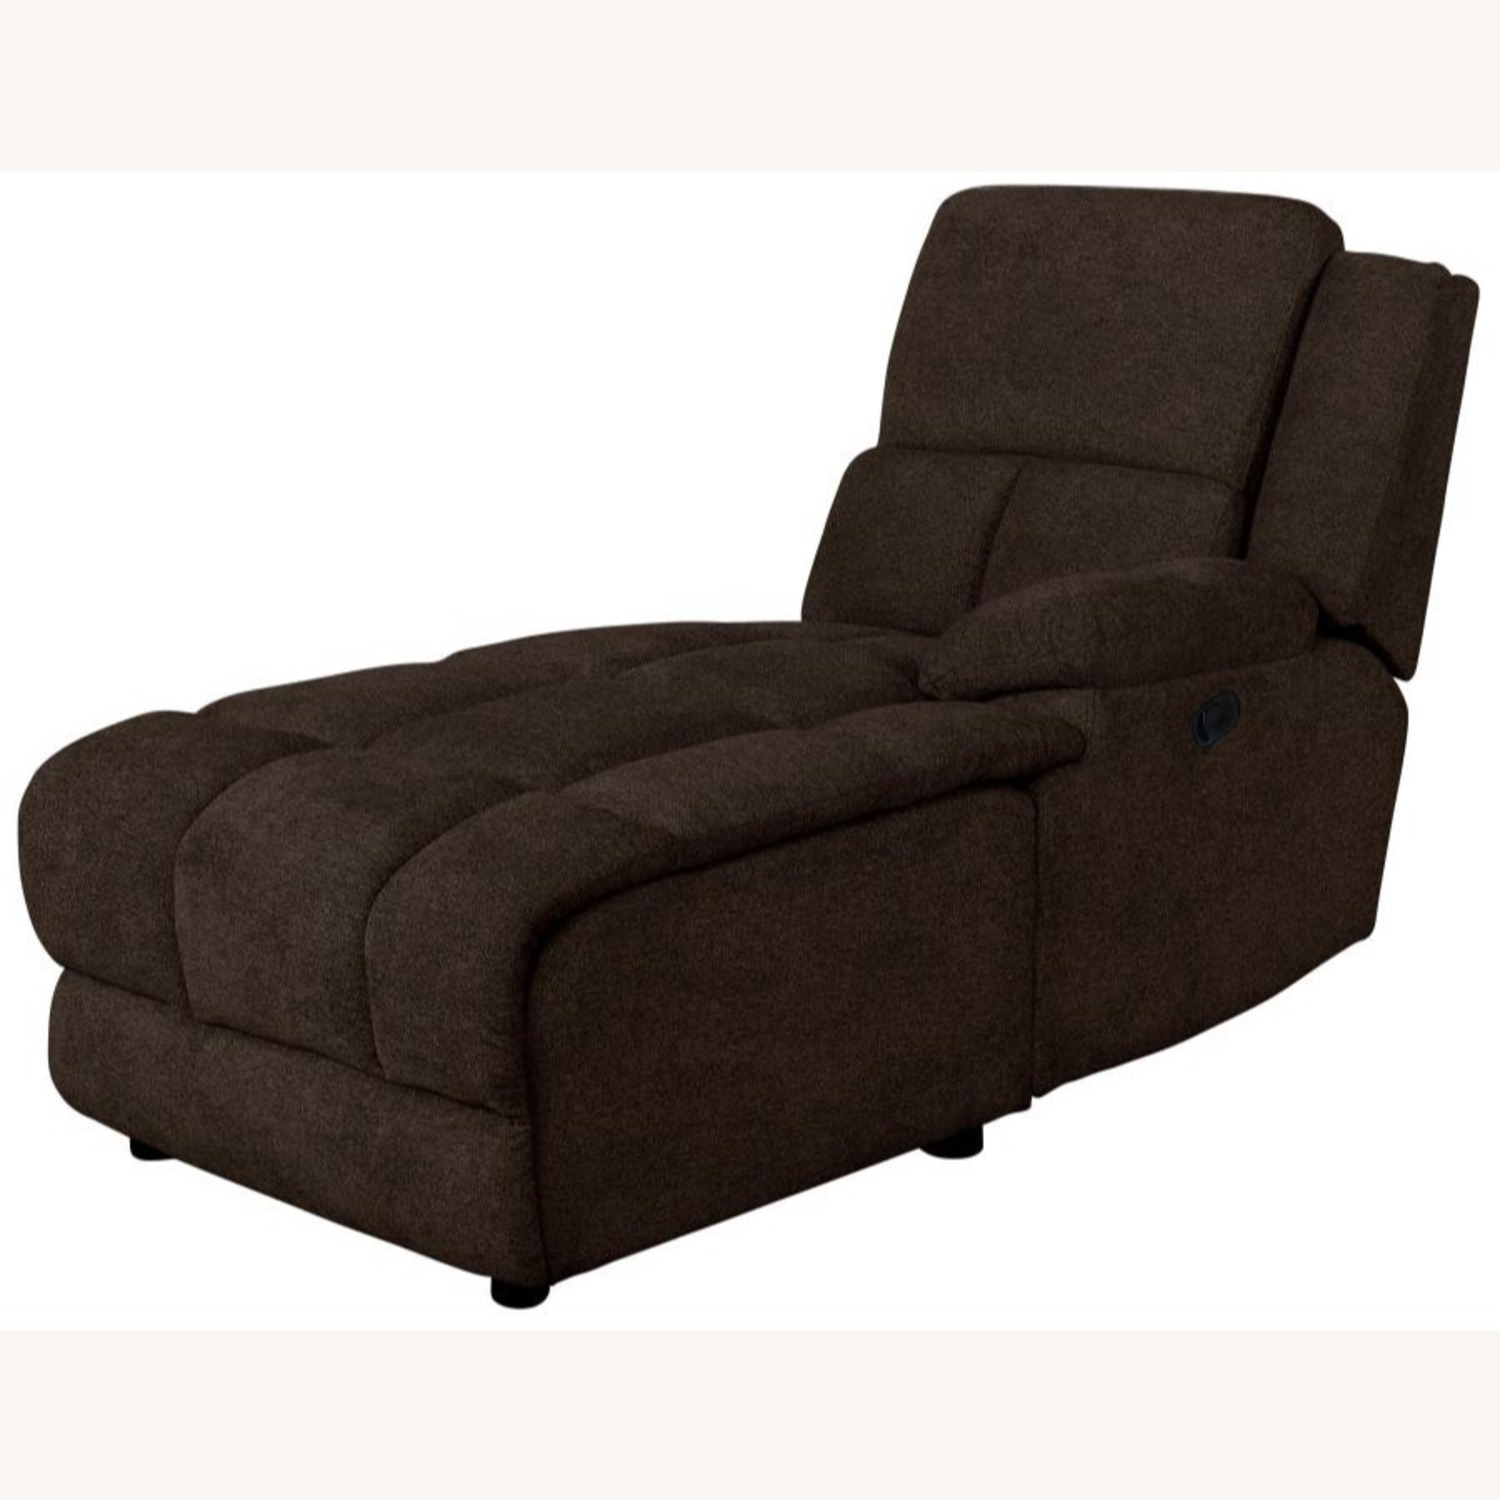 Motion Sectional In Brown Performance Fabric - image-5